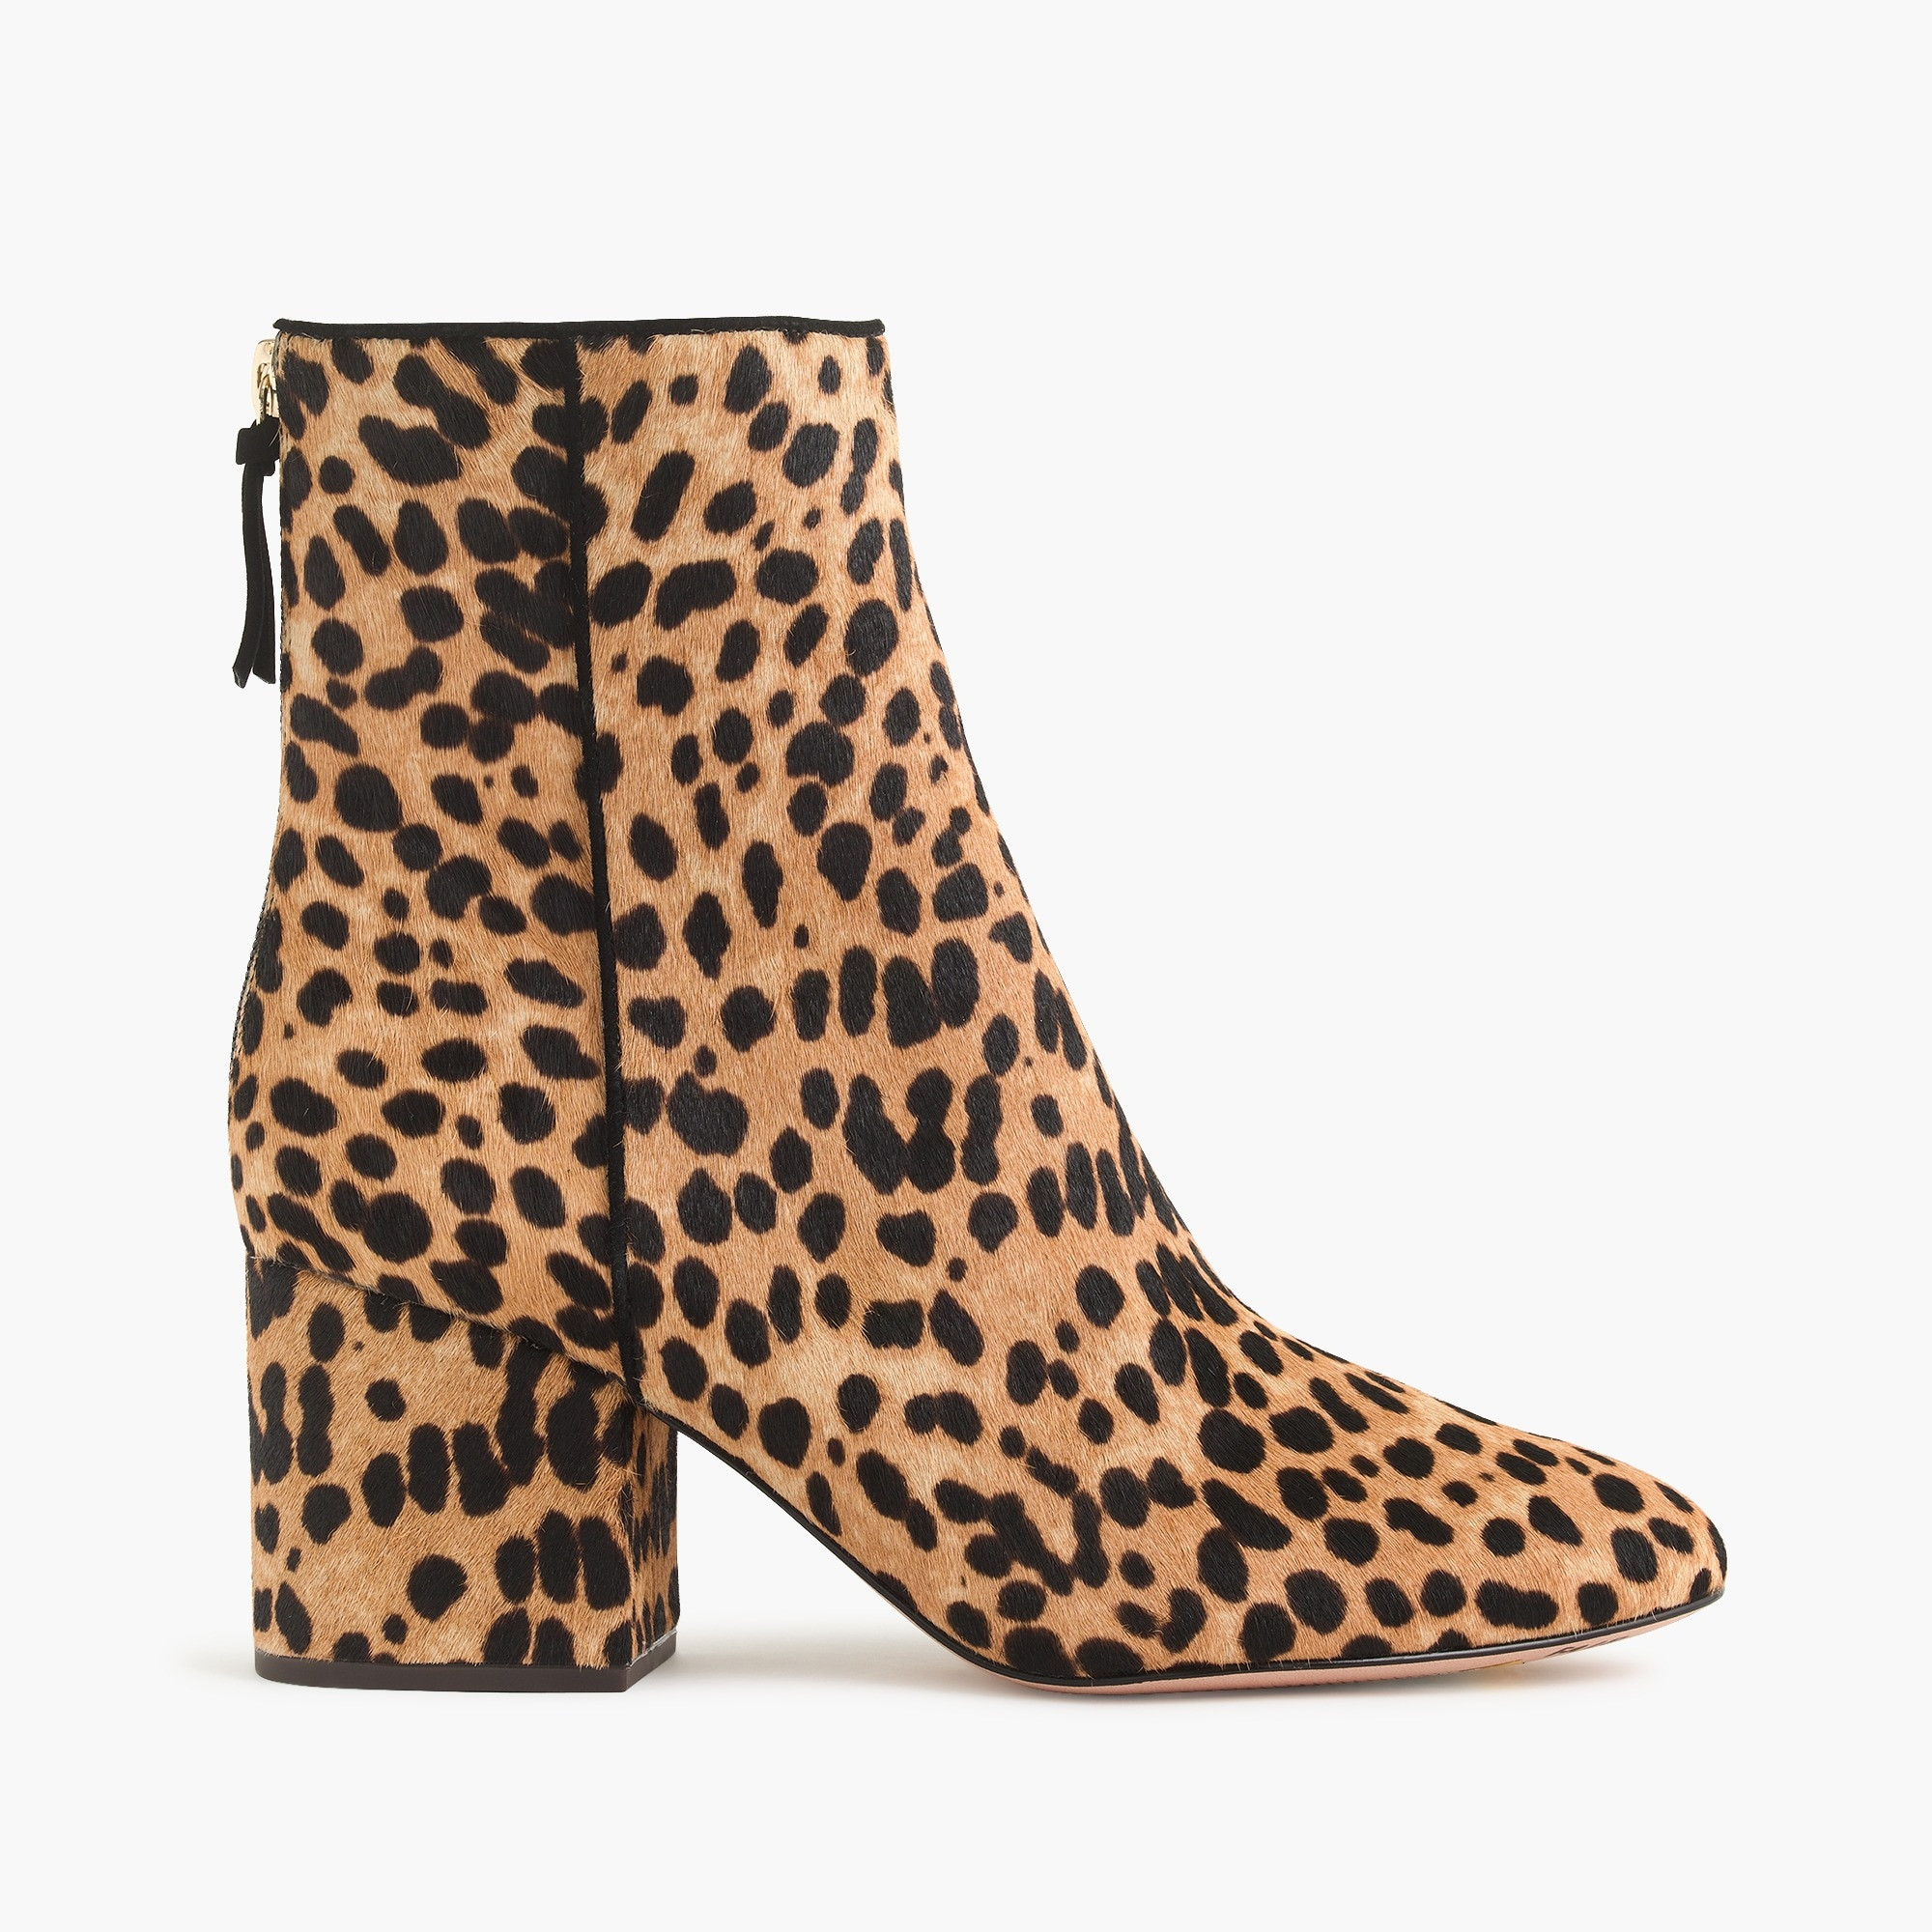 Image 2 for Sadie ankle boots in leopard calf hair